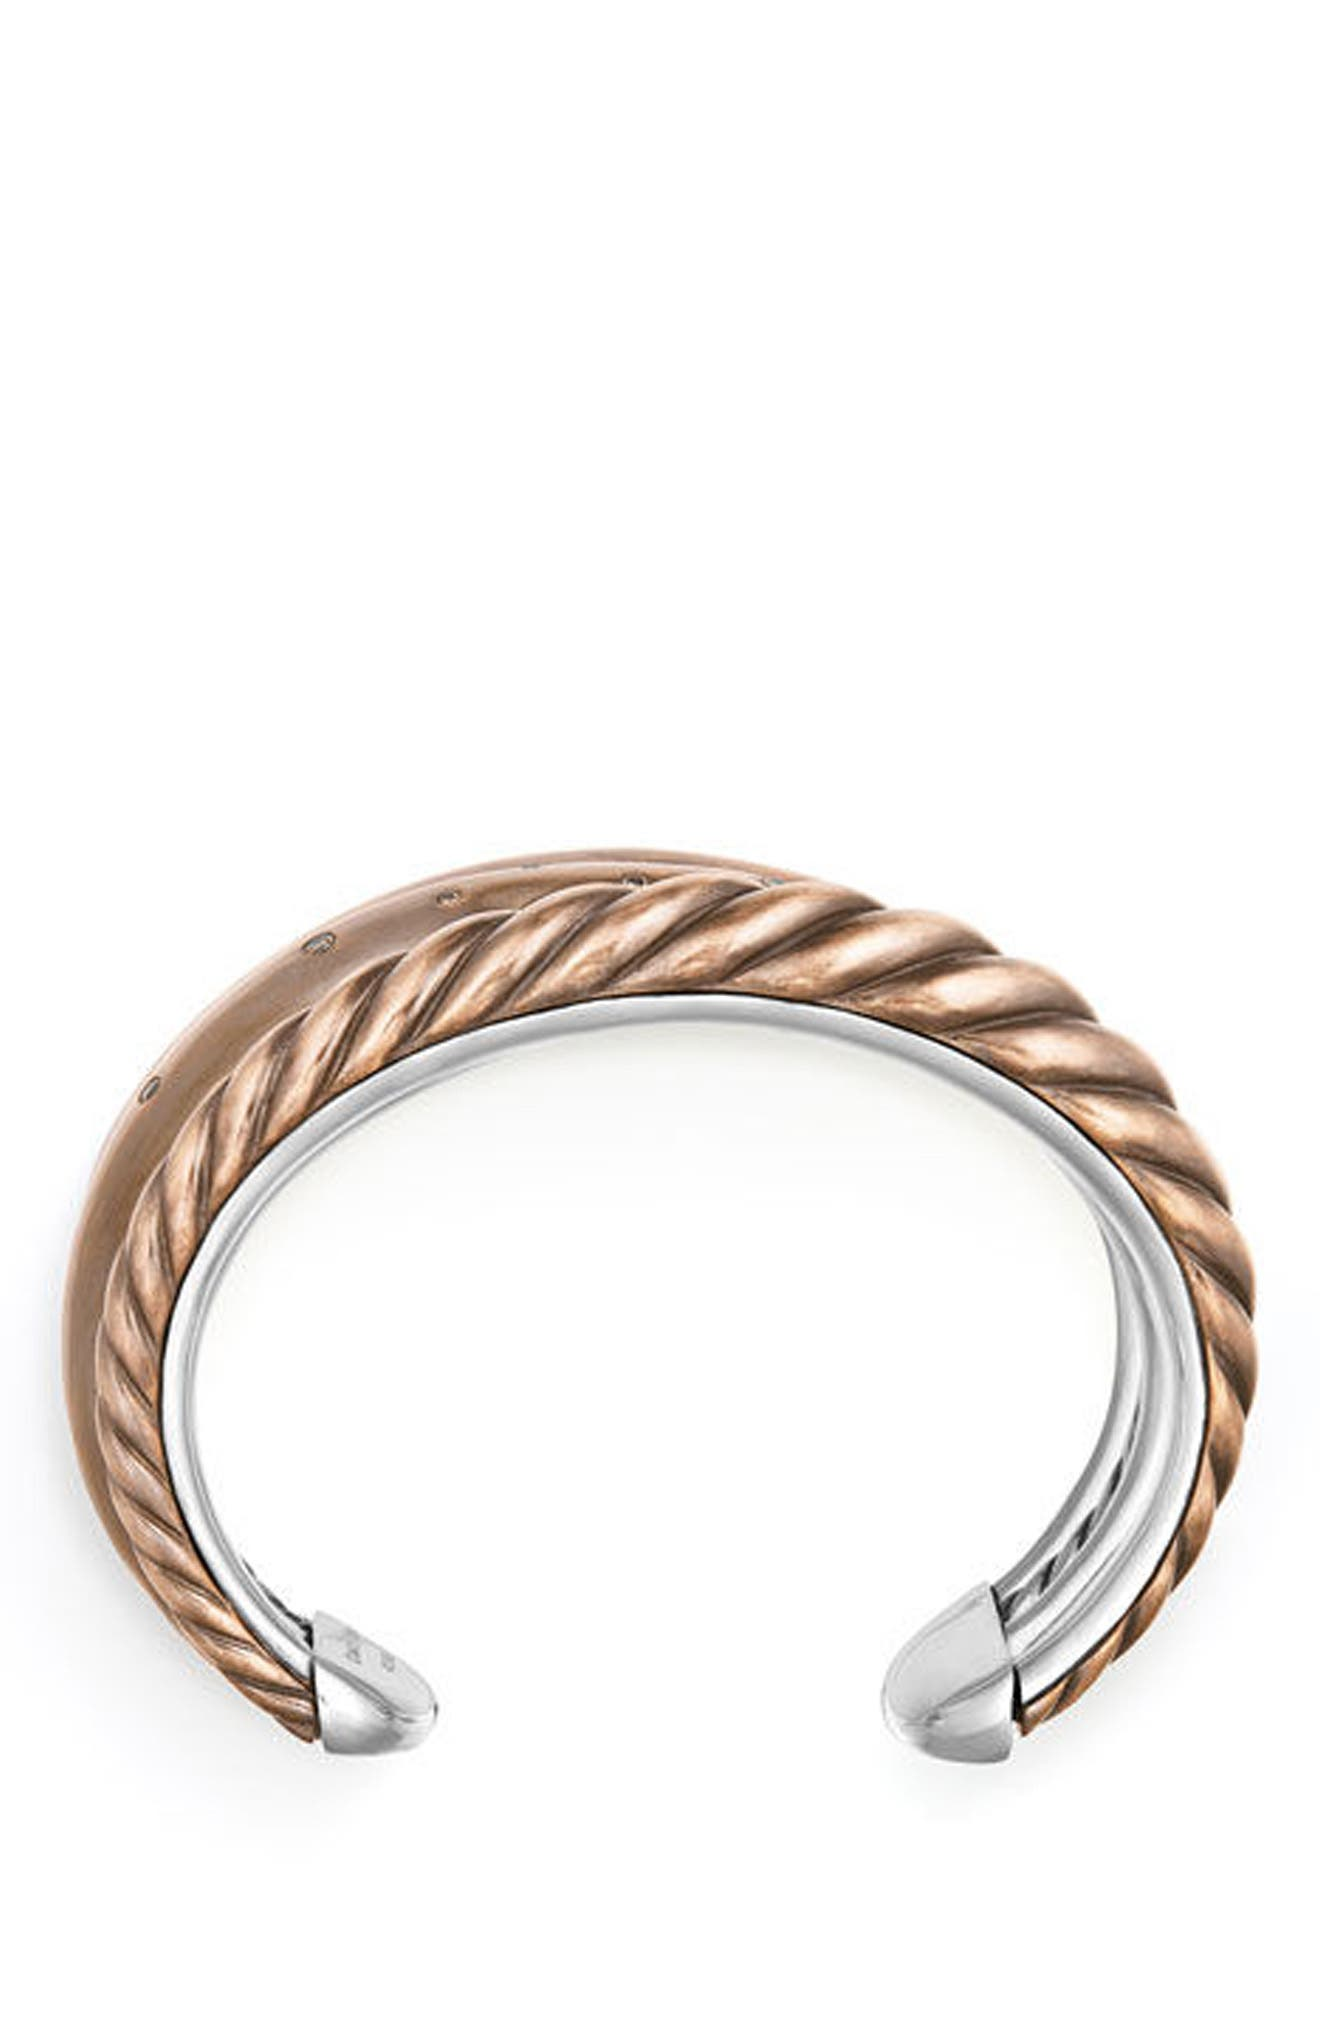 Pure Form Mixed Metal Five-Row Cuff with Diamonds, 41mm,                             Alternate thumbnail 2, color,                             COGNAC